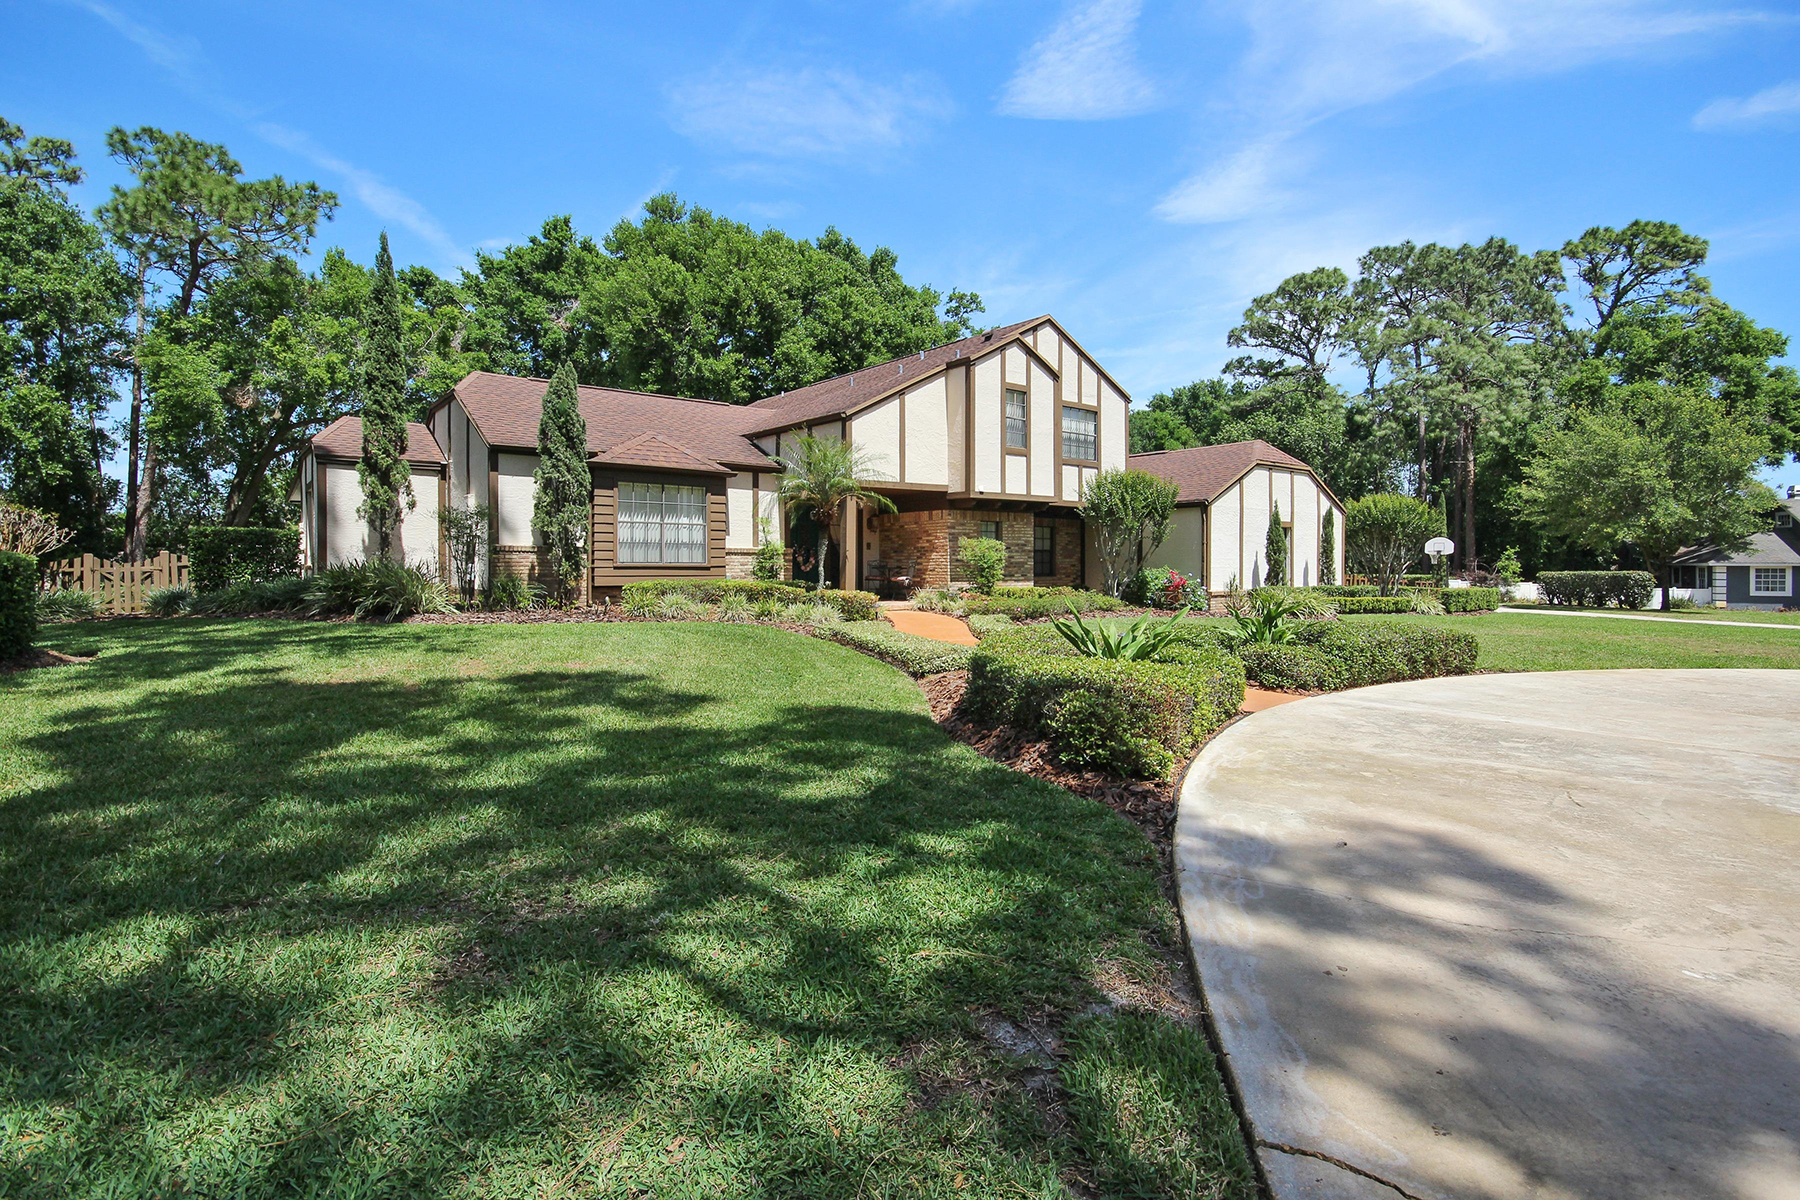 Single Family Home for Sale at ORLANDO - LONGWOOD 46 Stone Gate S Longwood, Florida 32779 United States